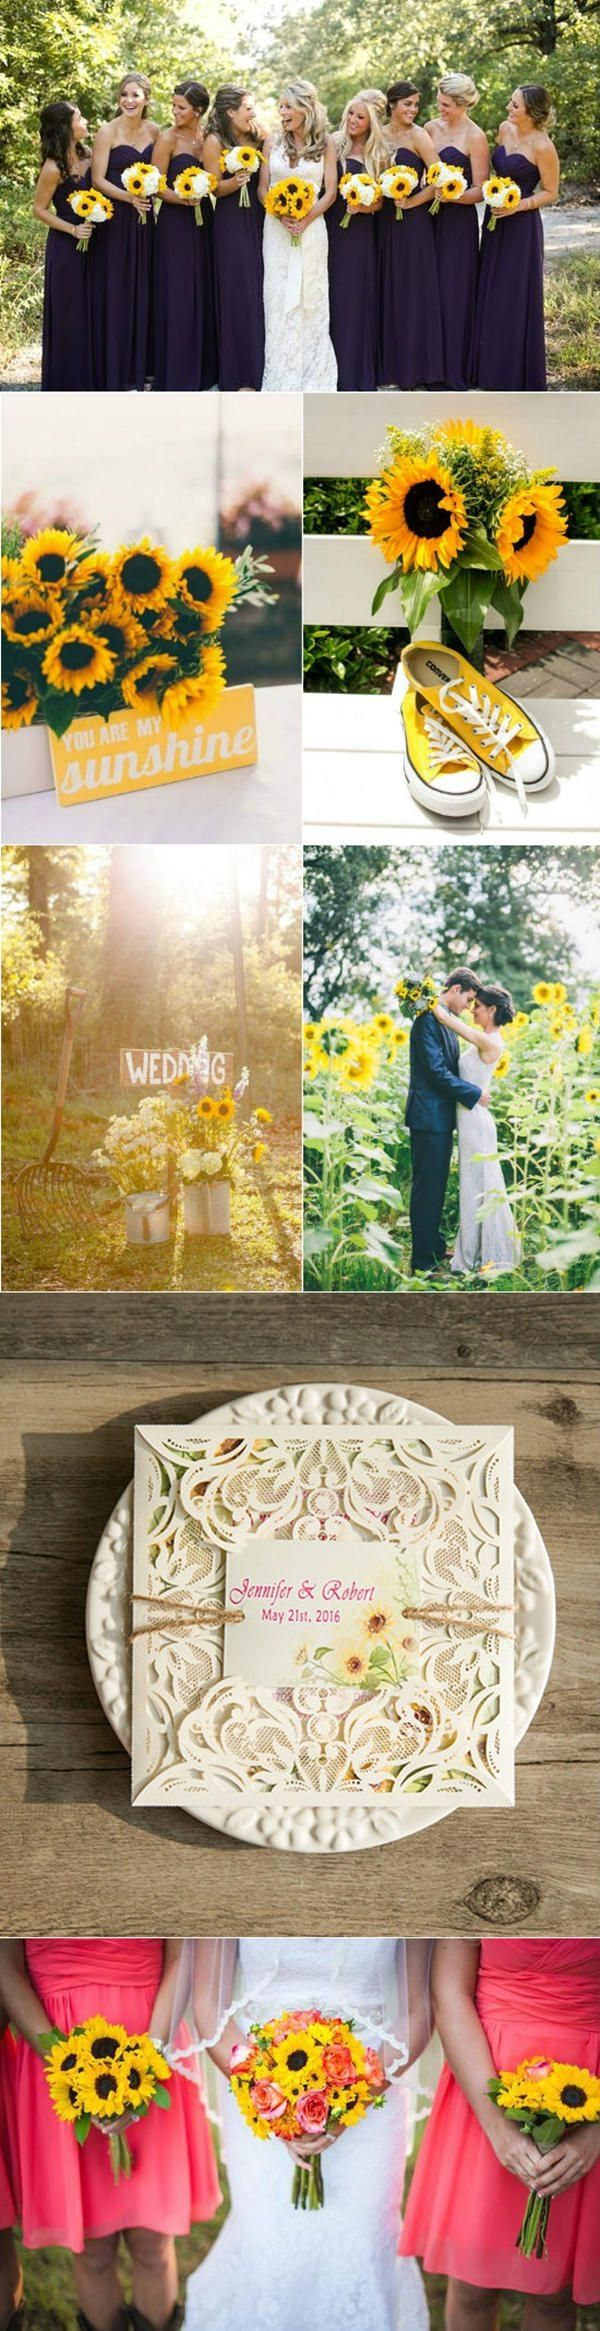 Wedding ideas spring  country rustic sunflower wedding ideas for  spring by louisa